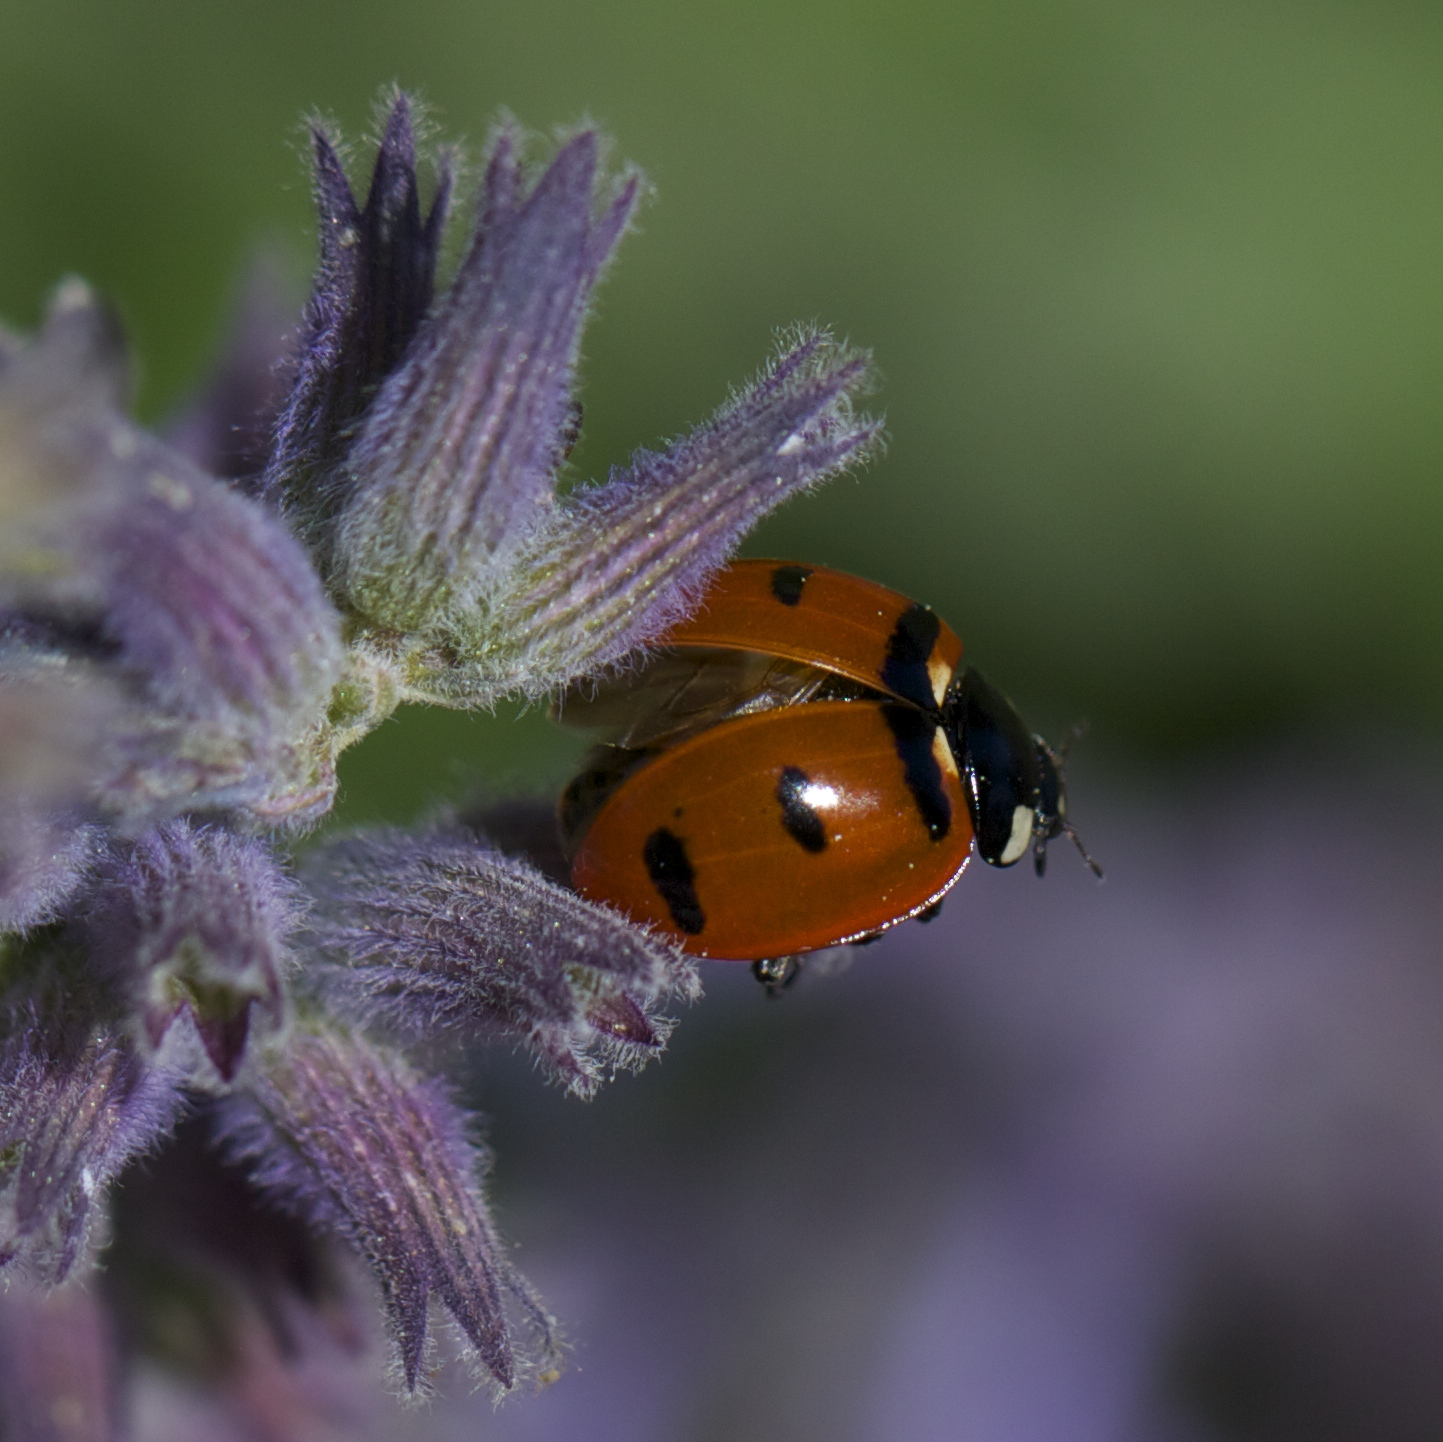 A ladybug taking off from the aging blossoms of catmint, Nepeta.